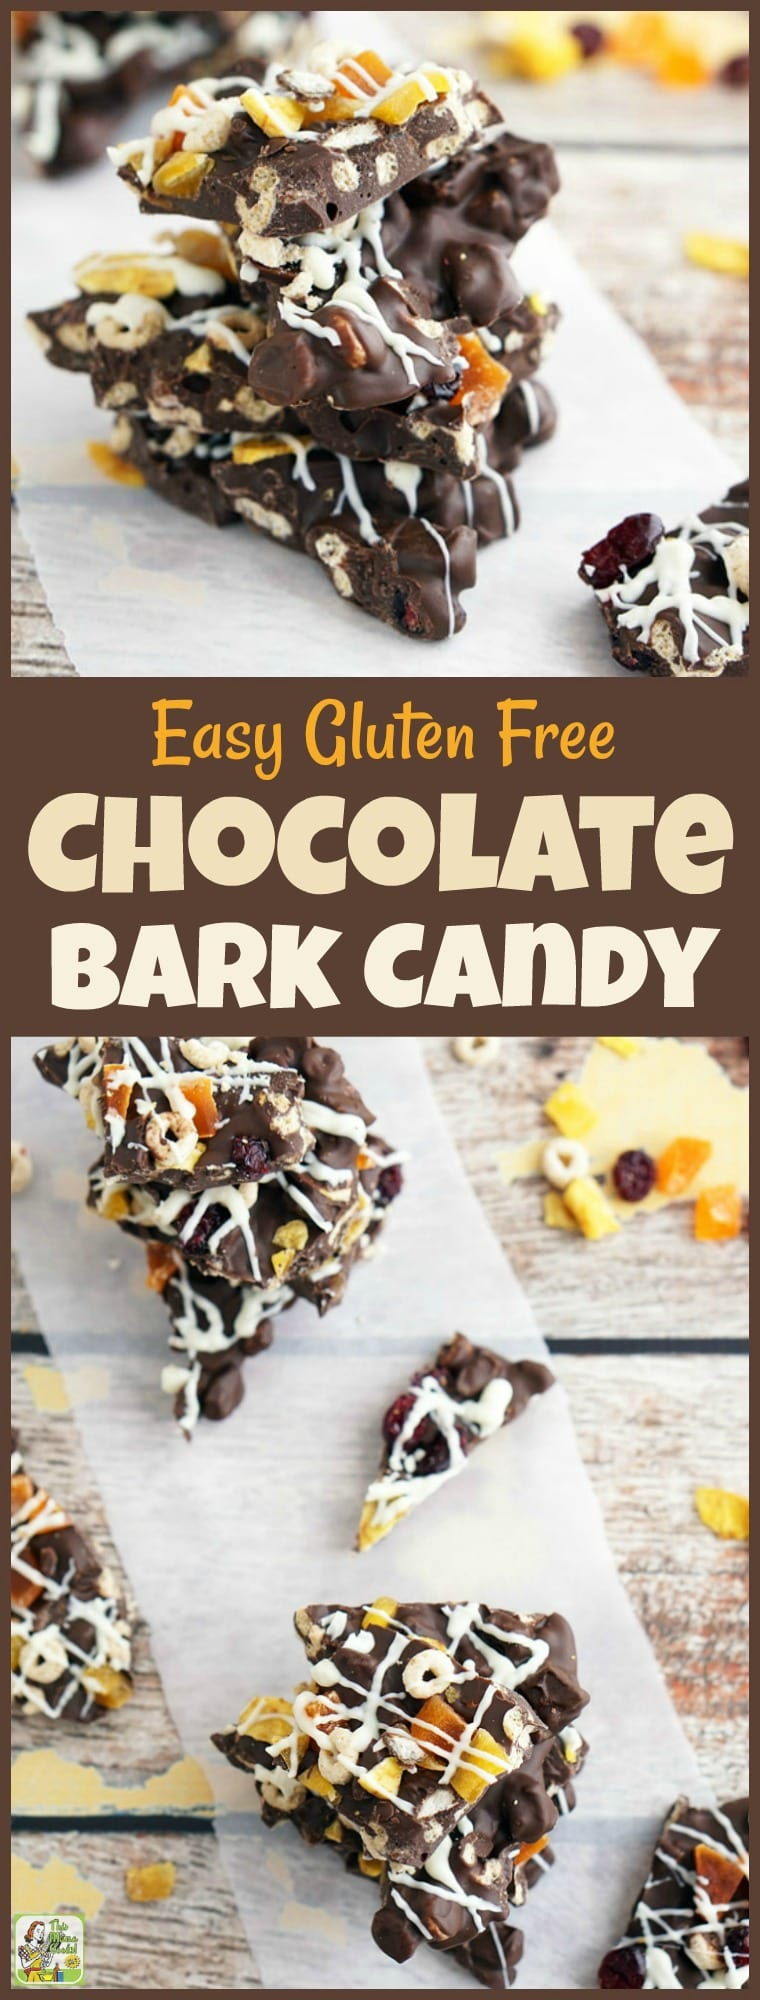 This Easy Gluten Free Chocolate Bark Candy makes an awesome snack. This easy to make bark candy recipe is made Frosty Cheerios, dried fruit and candy melts. Great for homemade candy DIY gifts and Christmas holiday cookie exchanges. #glutenfree #chocolate #candy #homemadegifts #DIY #gifts #Christmas #cookies #cookieexchange #cookieswap #chocolatebark #candybark #barkcandy #cheerios #candymelts #recipe #easy #recipeoftheday #easyrecipes #snacks